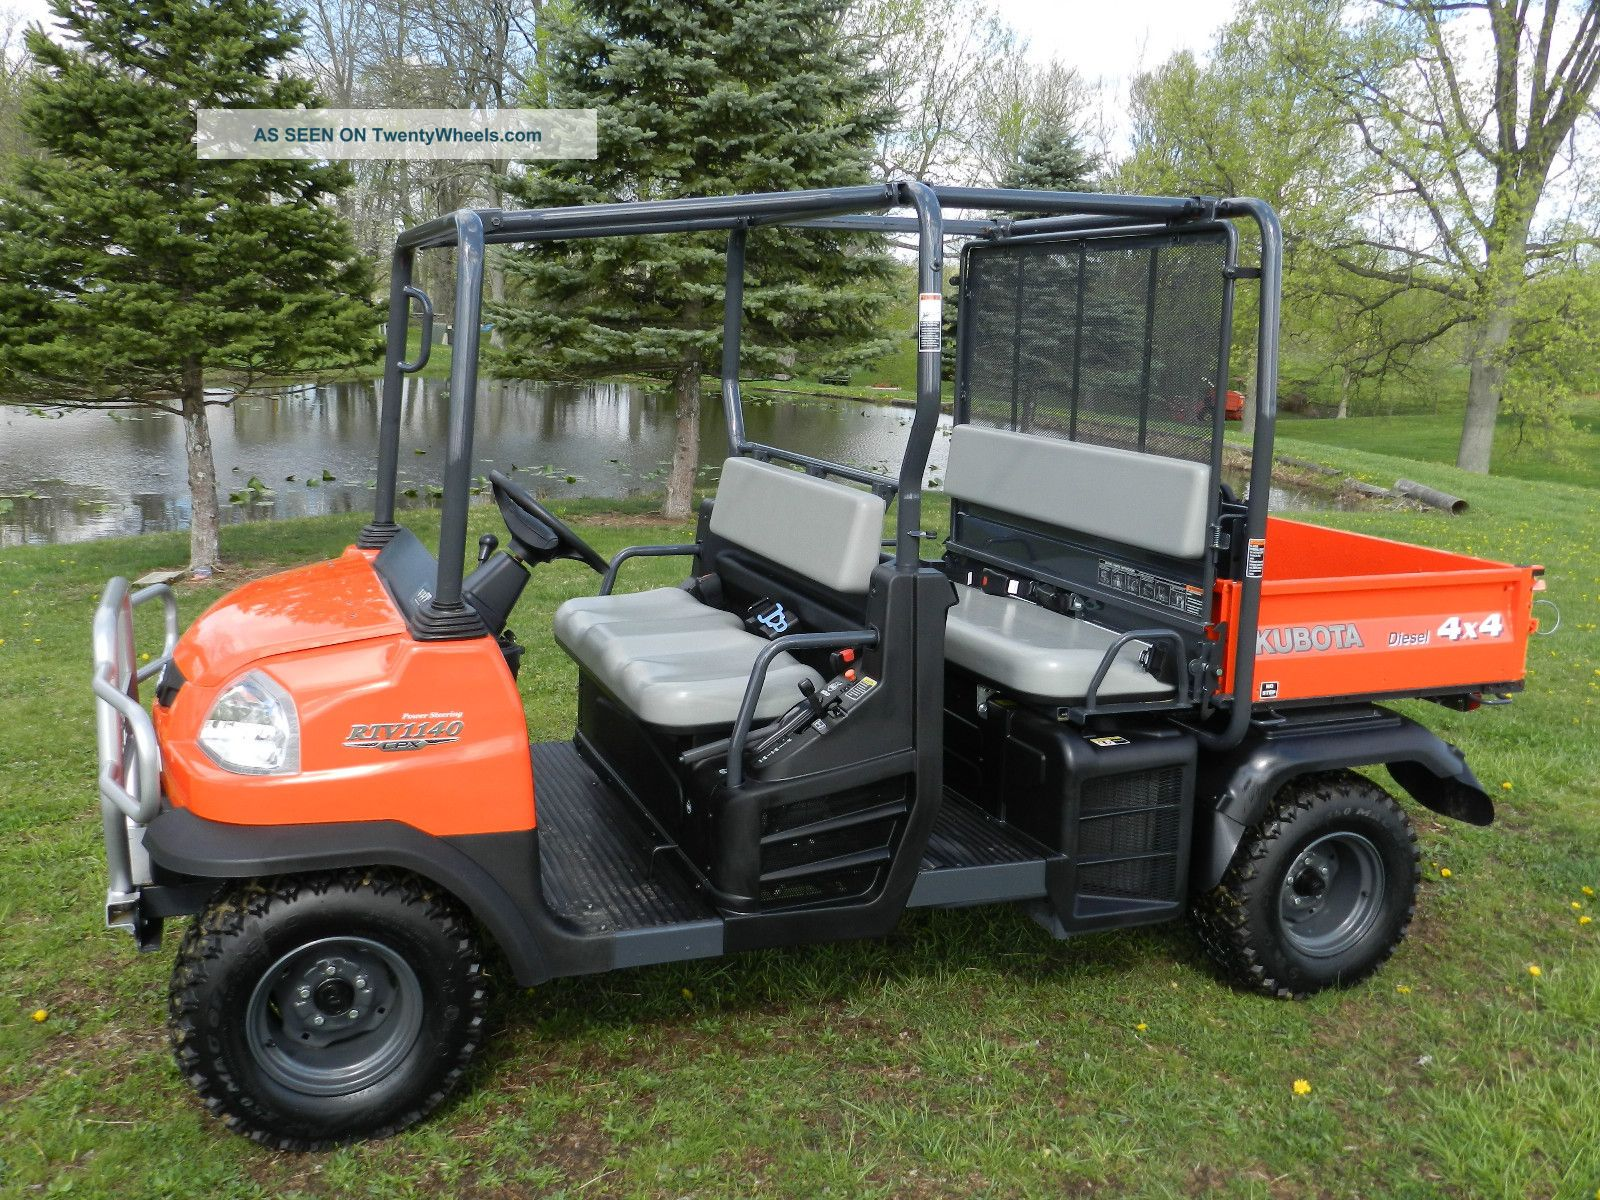 2013 Kubota Rtv 1140 Cpx - Double Seater - Hydraulic Dump Bed - Diesel 4x4 Utility Vehicles photo